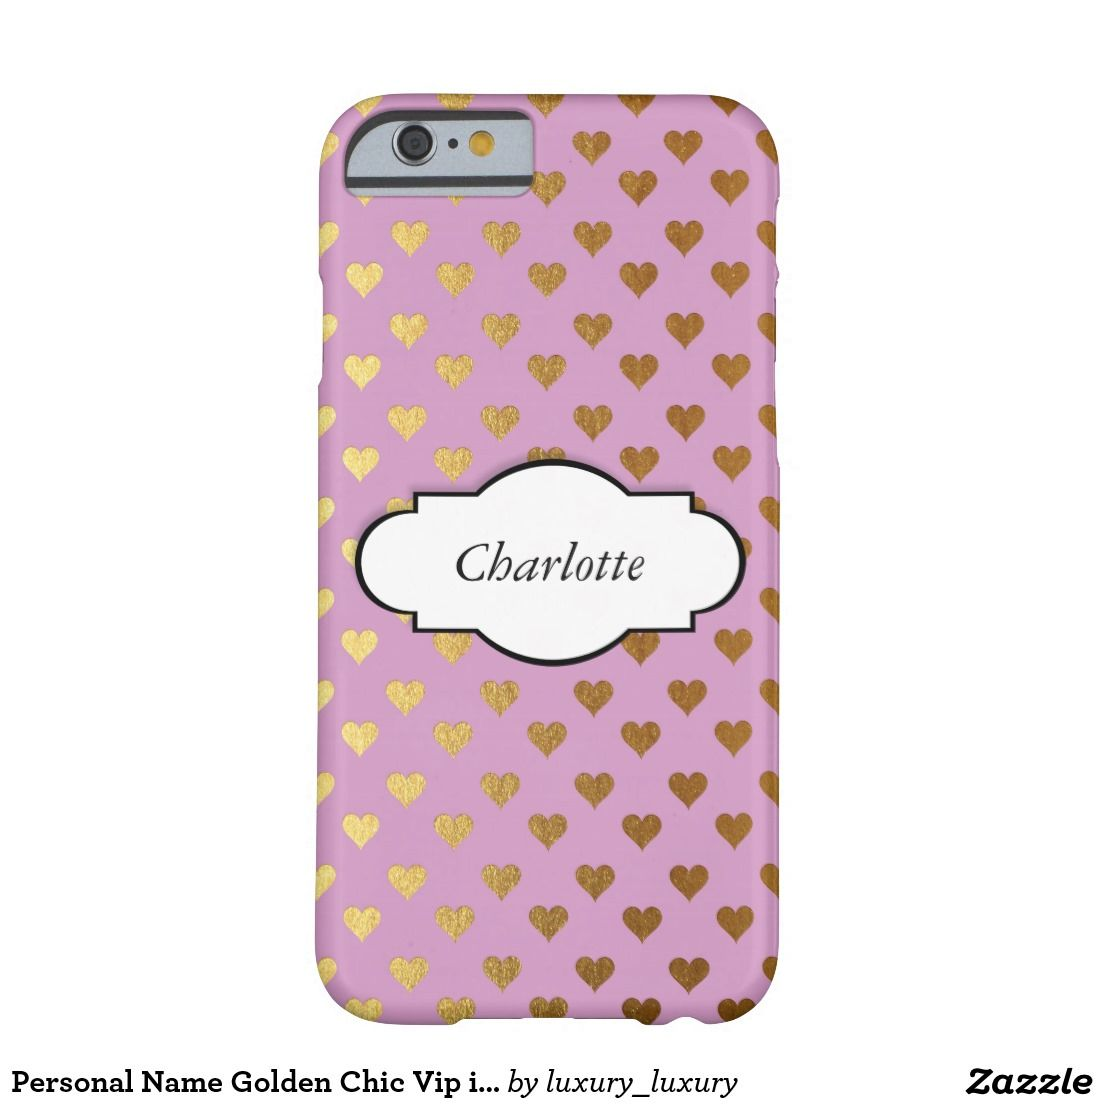 Personal Name Golden Chic Vip iPhone Samsung Case Barely There iPhone 6 Case